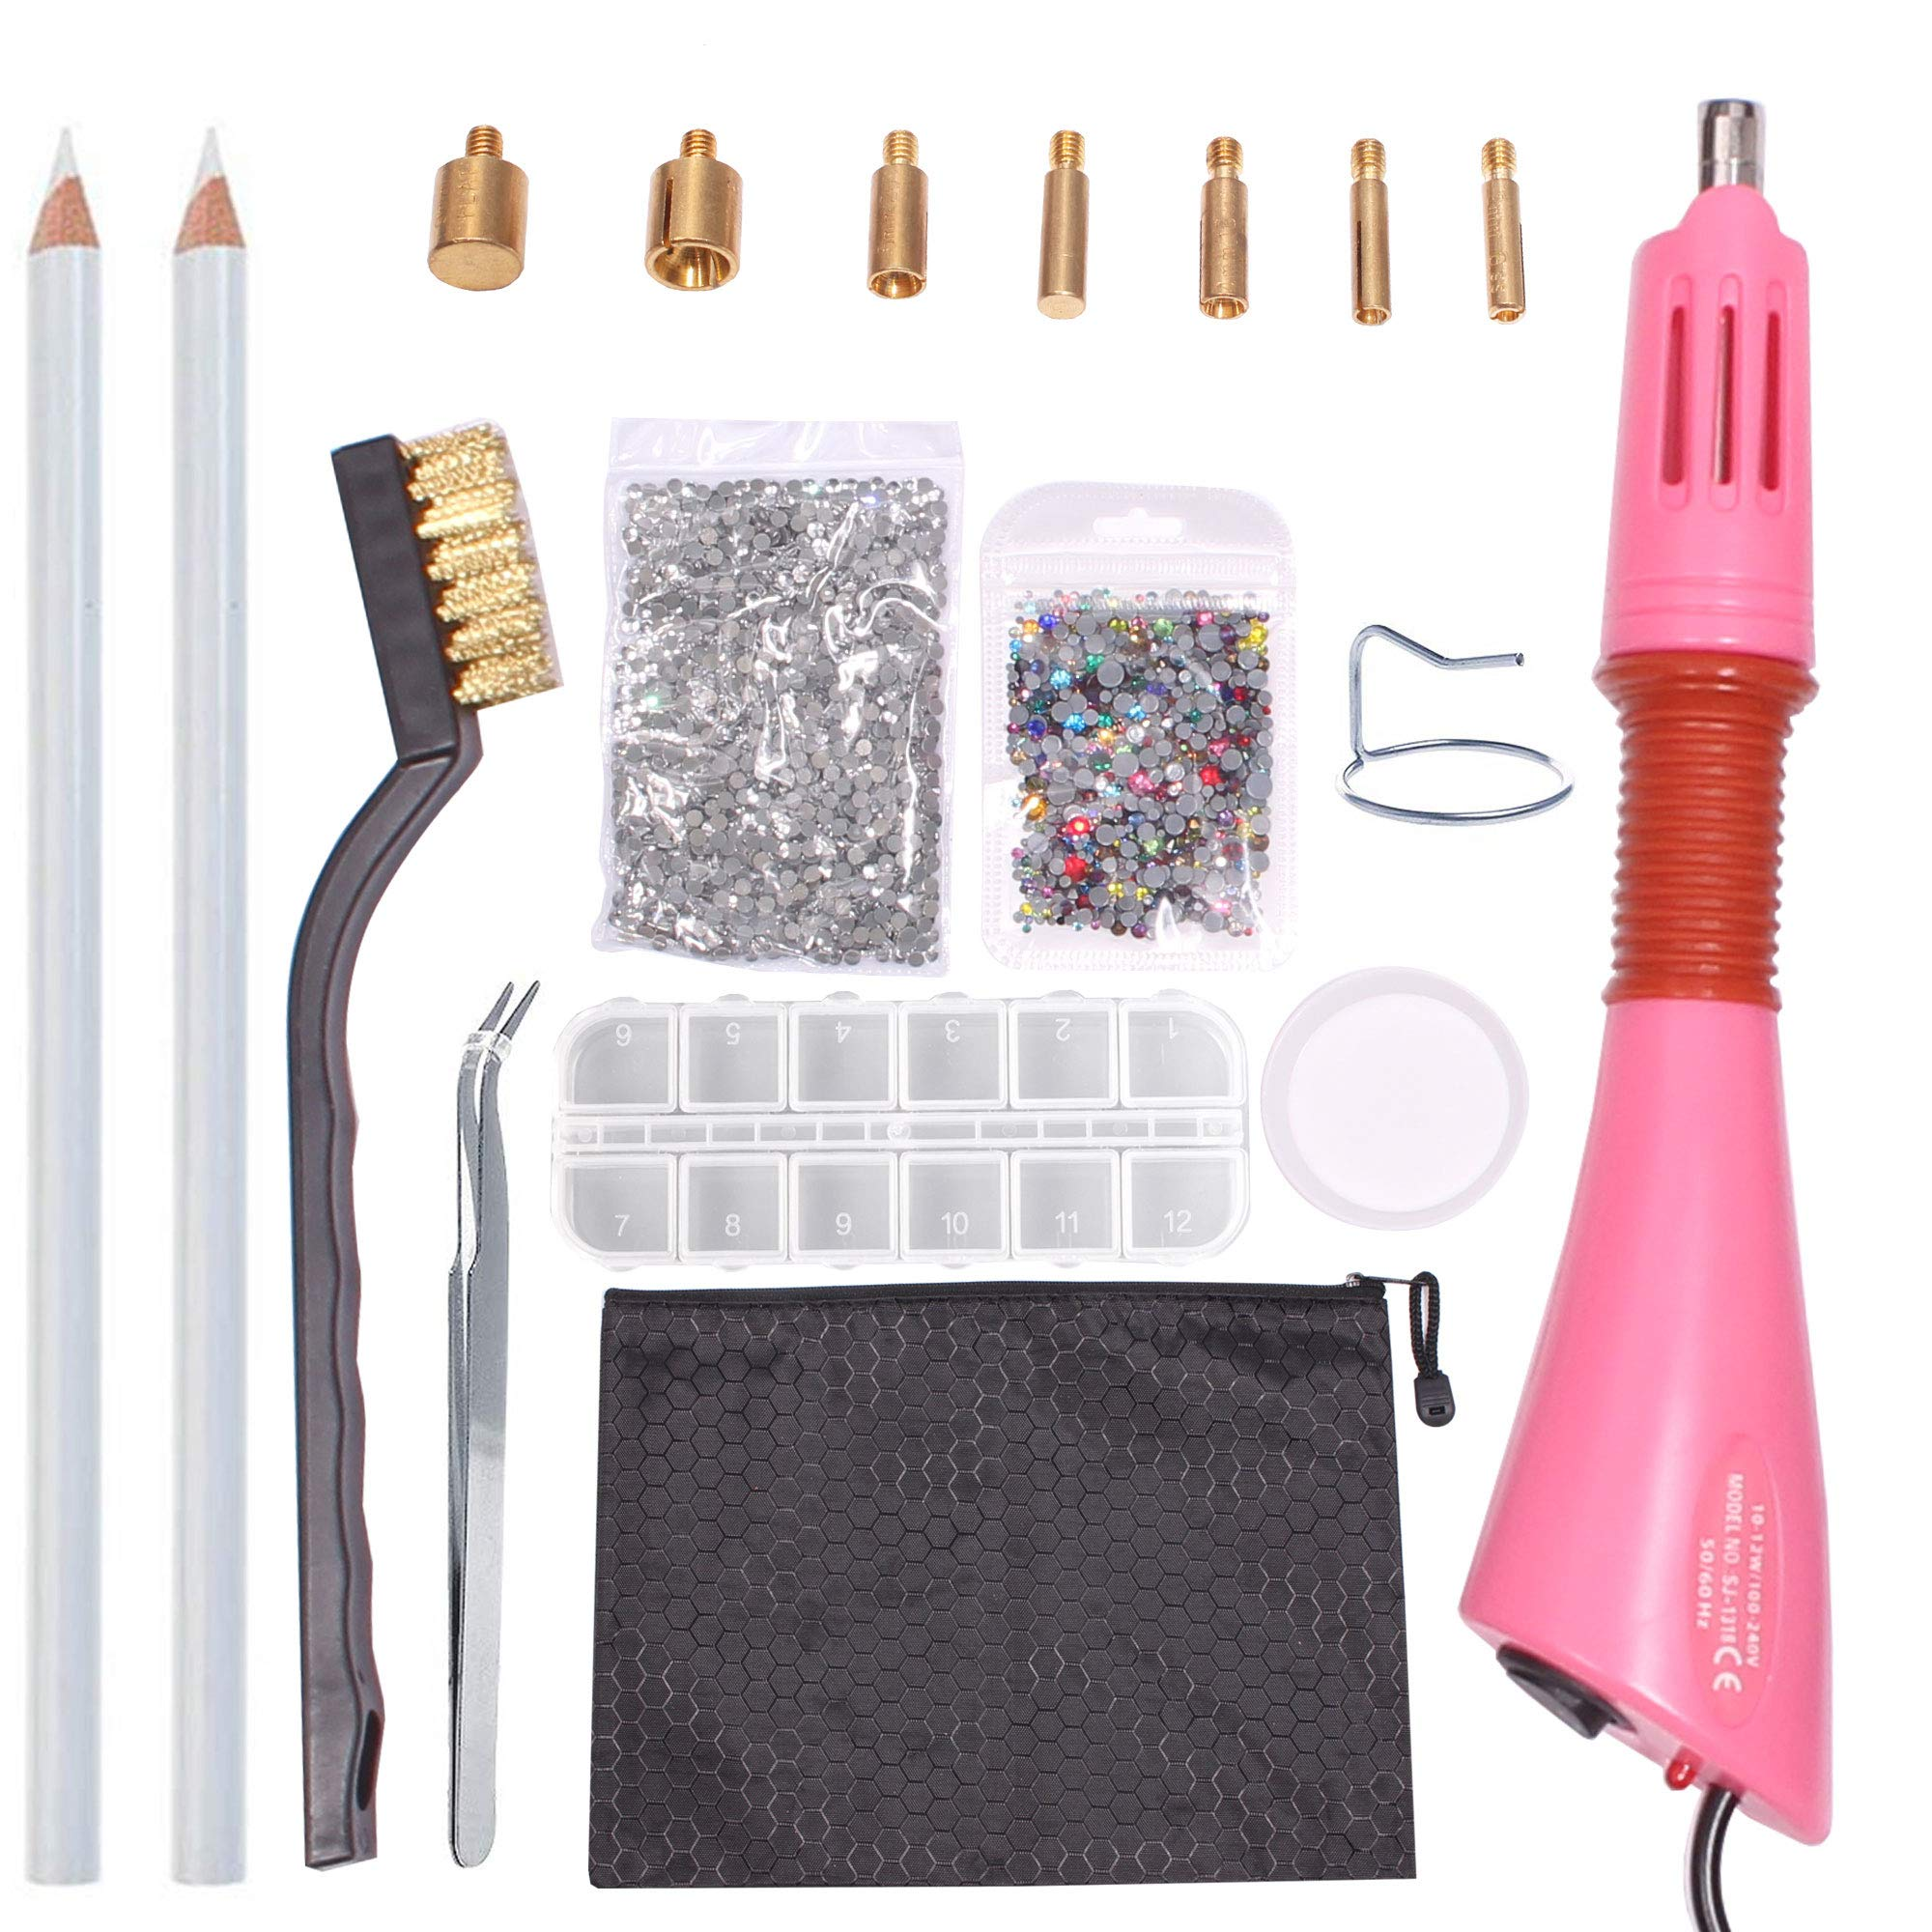 Rhinestone Hotfix Applicator -DIY Hot-Fix Applicator Crystal Wand Setter Tool Kit with 7 Different Sizes Tips,Tweezers & Brush Cleaning kit and 2 Bags Hot-Fix Crystal Rhinestones(About 3000 Stone) by AllGoodWare